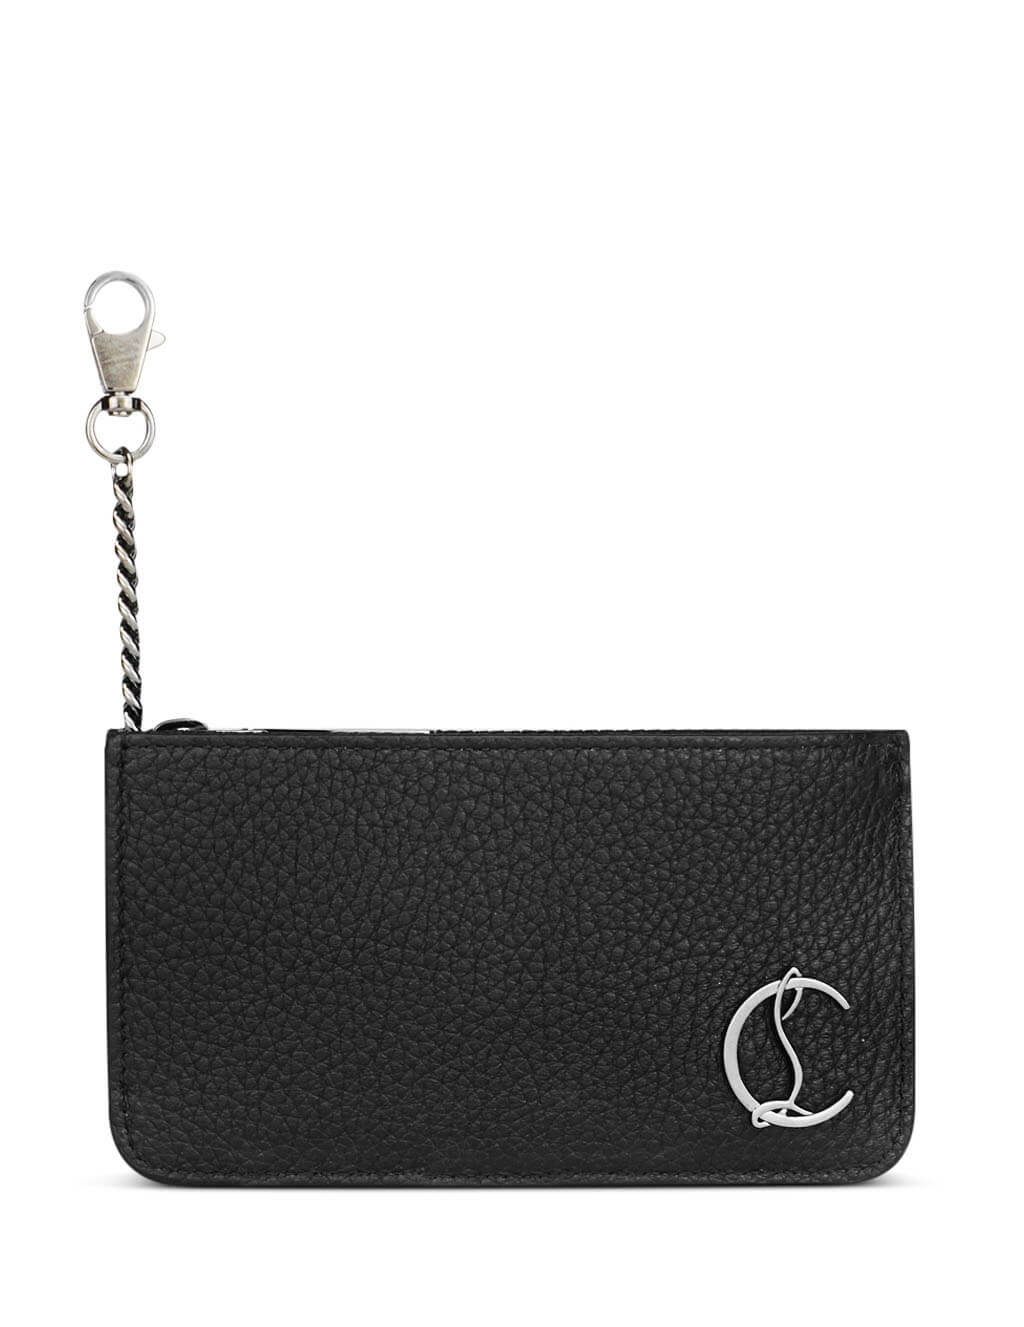 CL Logo Credilou Card Holder